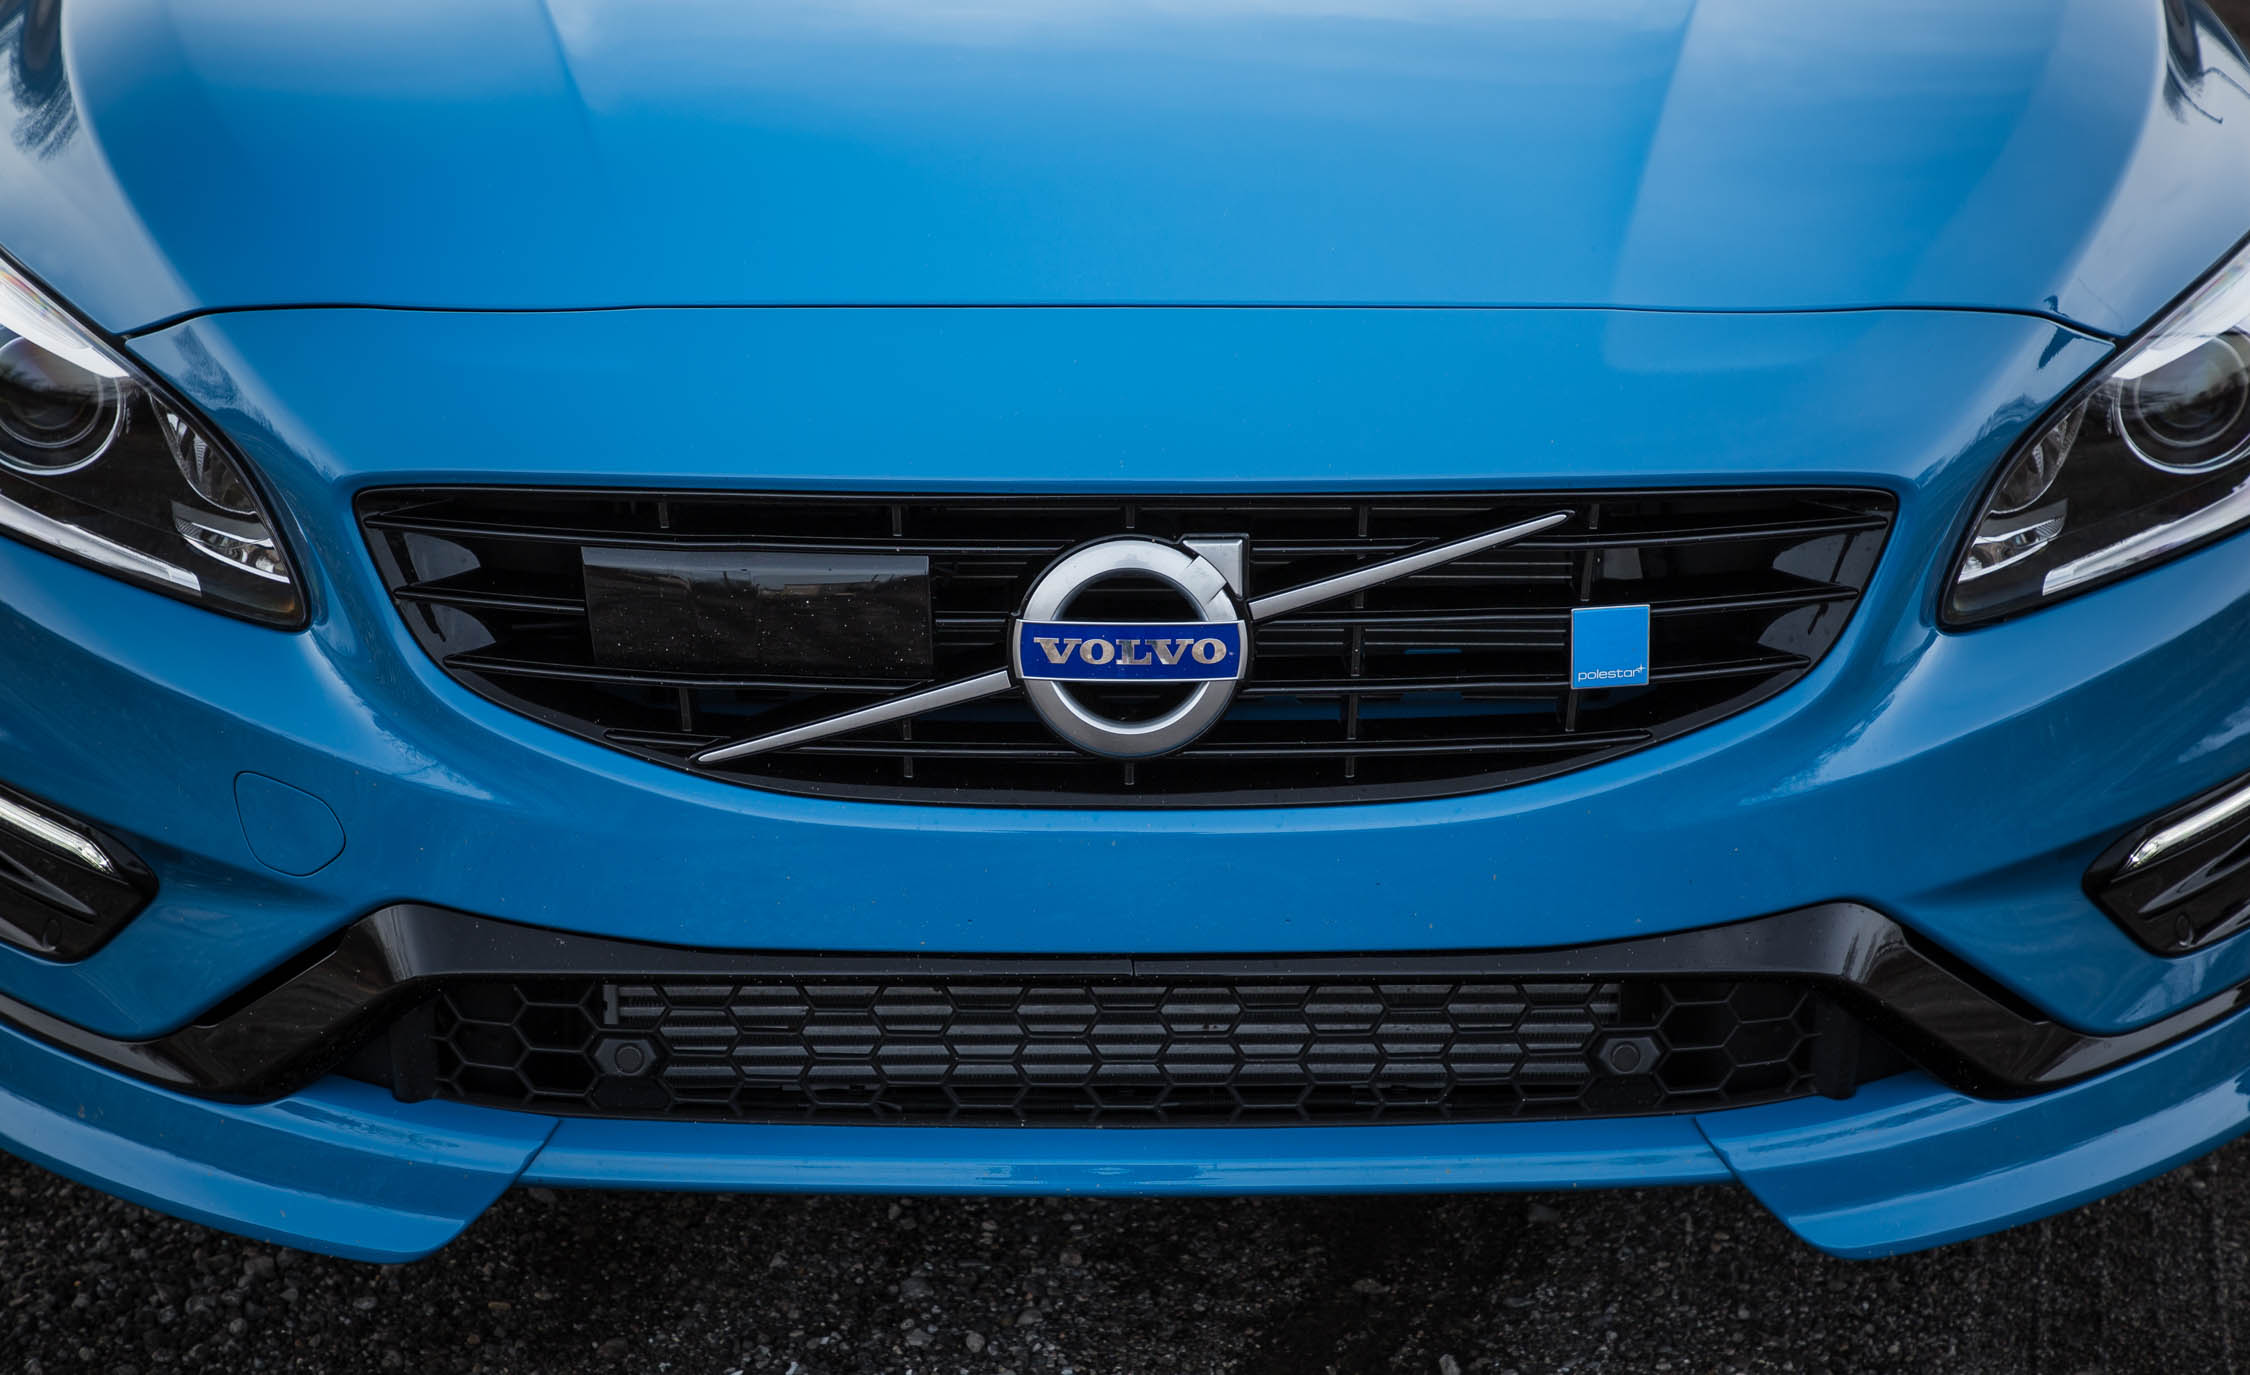 2017 Volvo V60 Polestar Exterior View Grille (Photo 7 of 53)